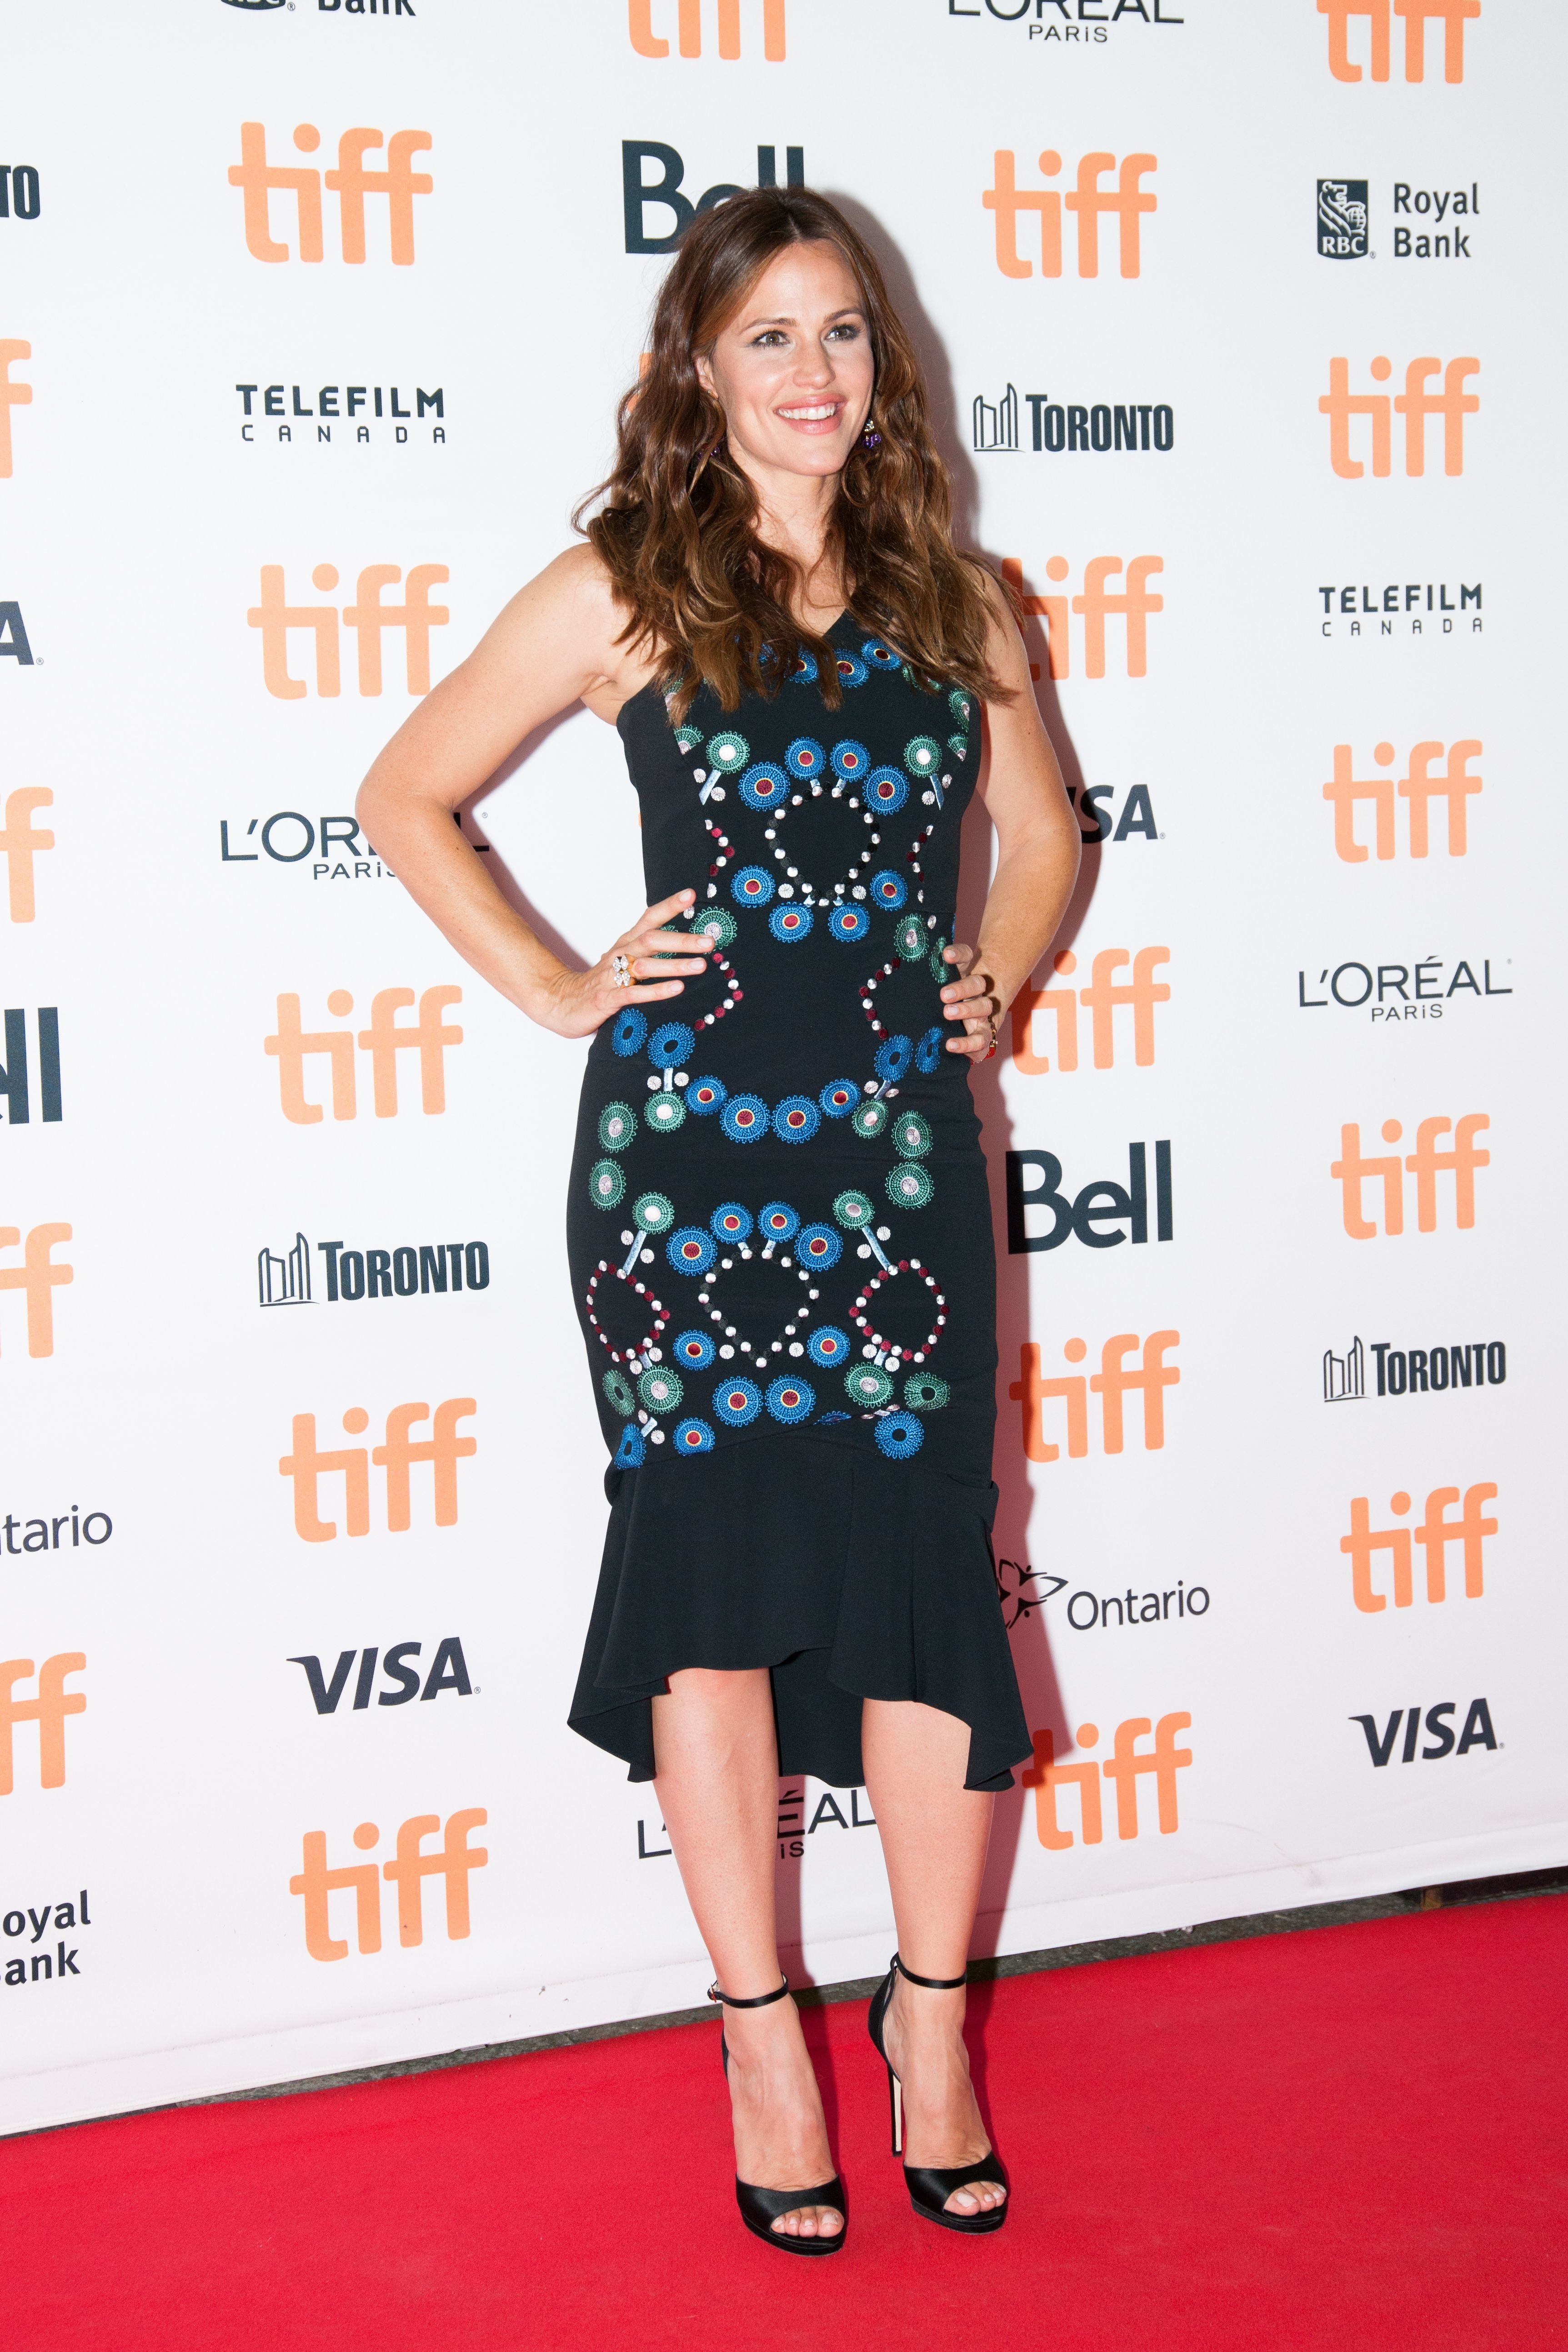 Jennifer Garner heads to Nevada for Hillary Clinton